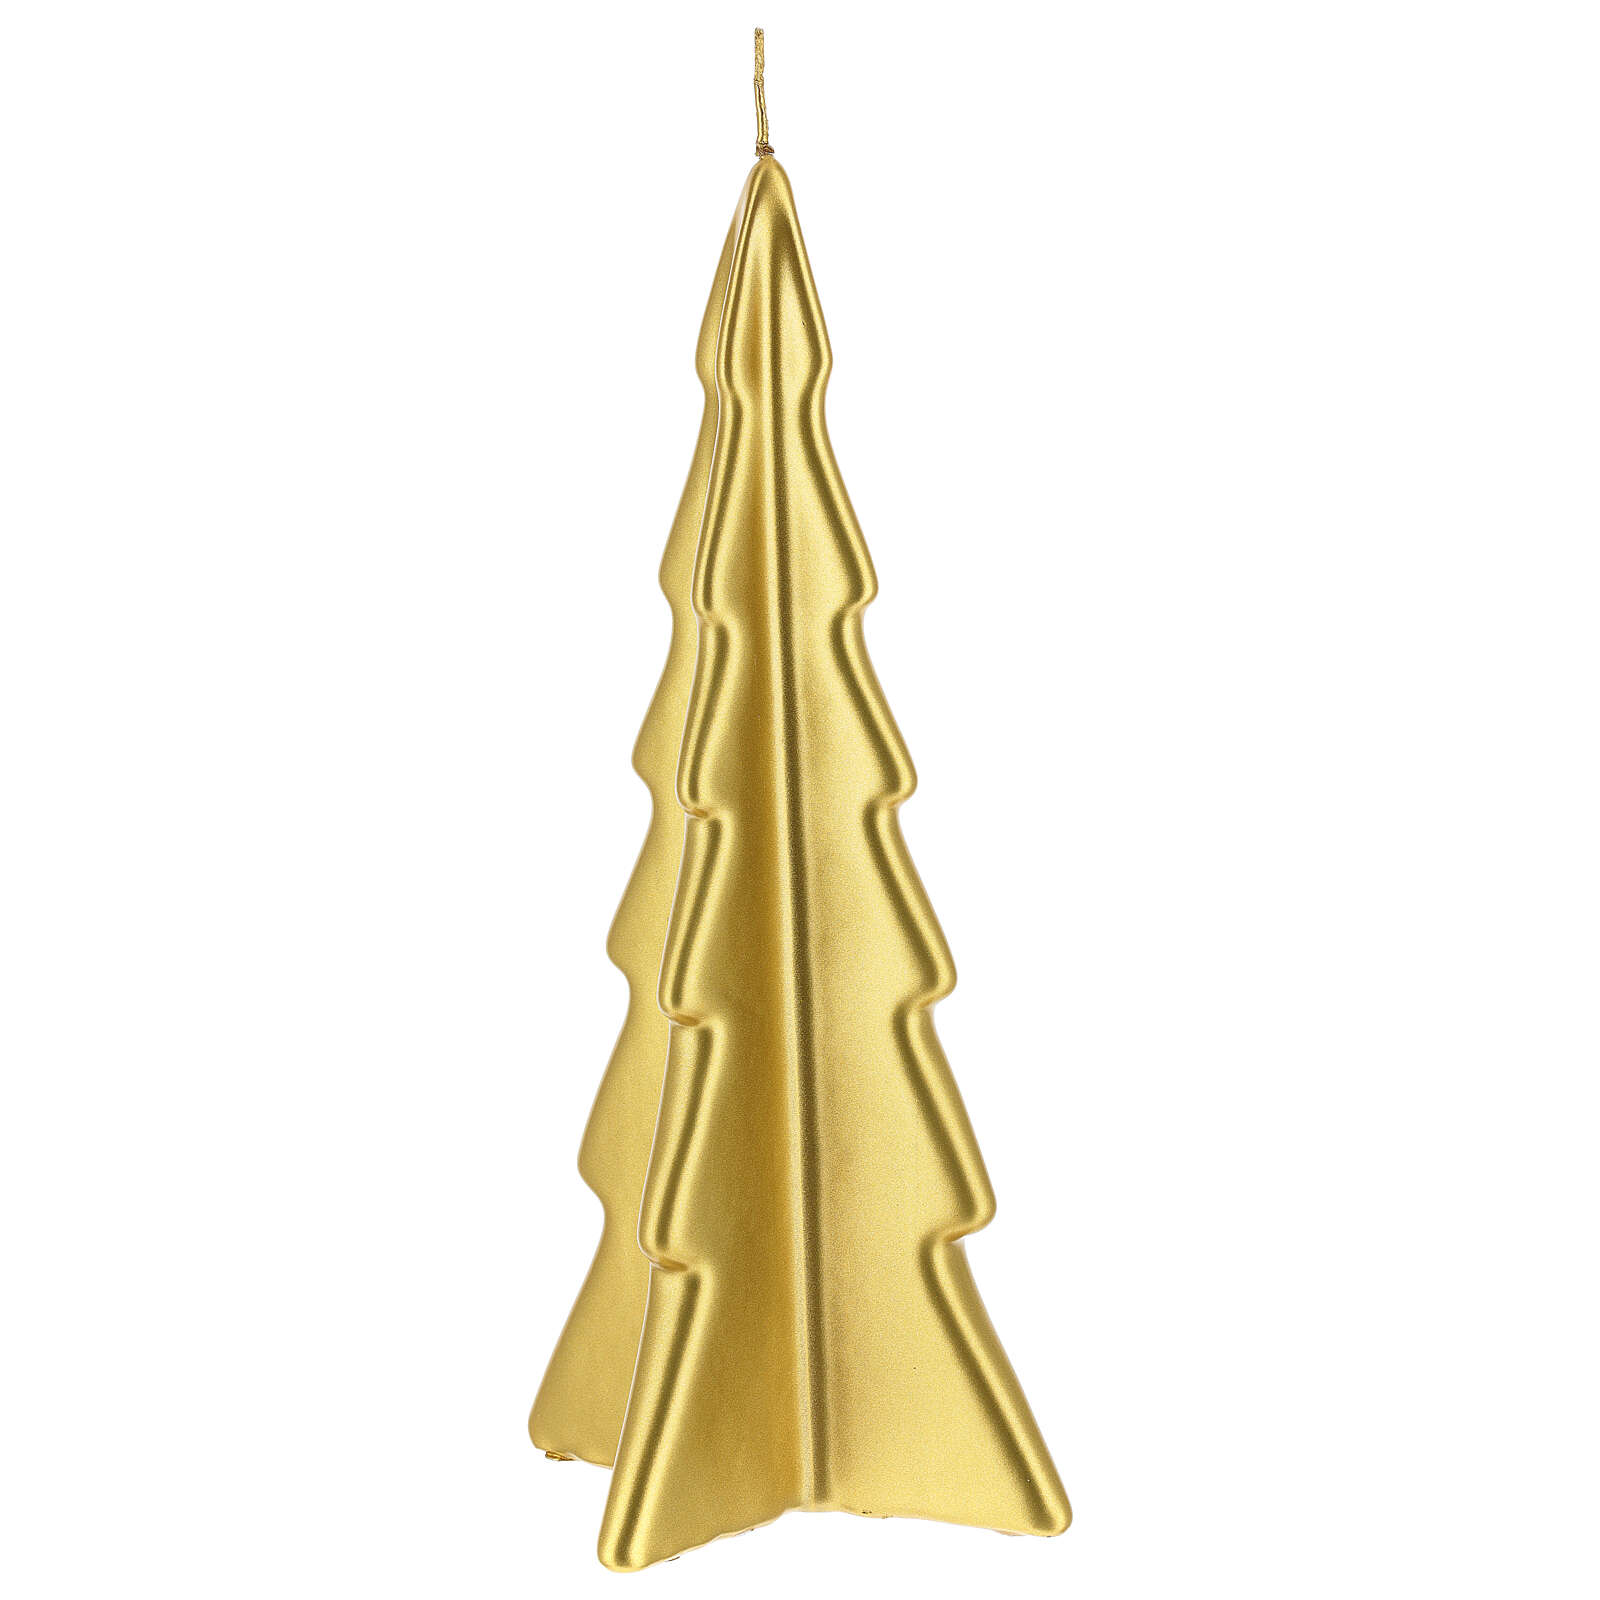 Golden tree Oslo Christmas candle 10 in 3